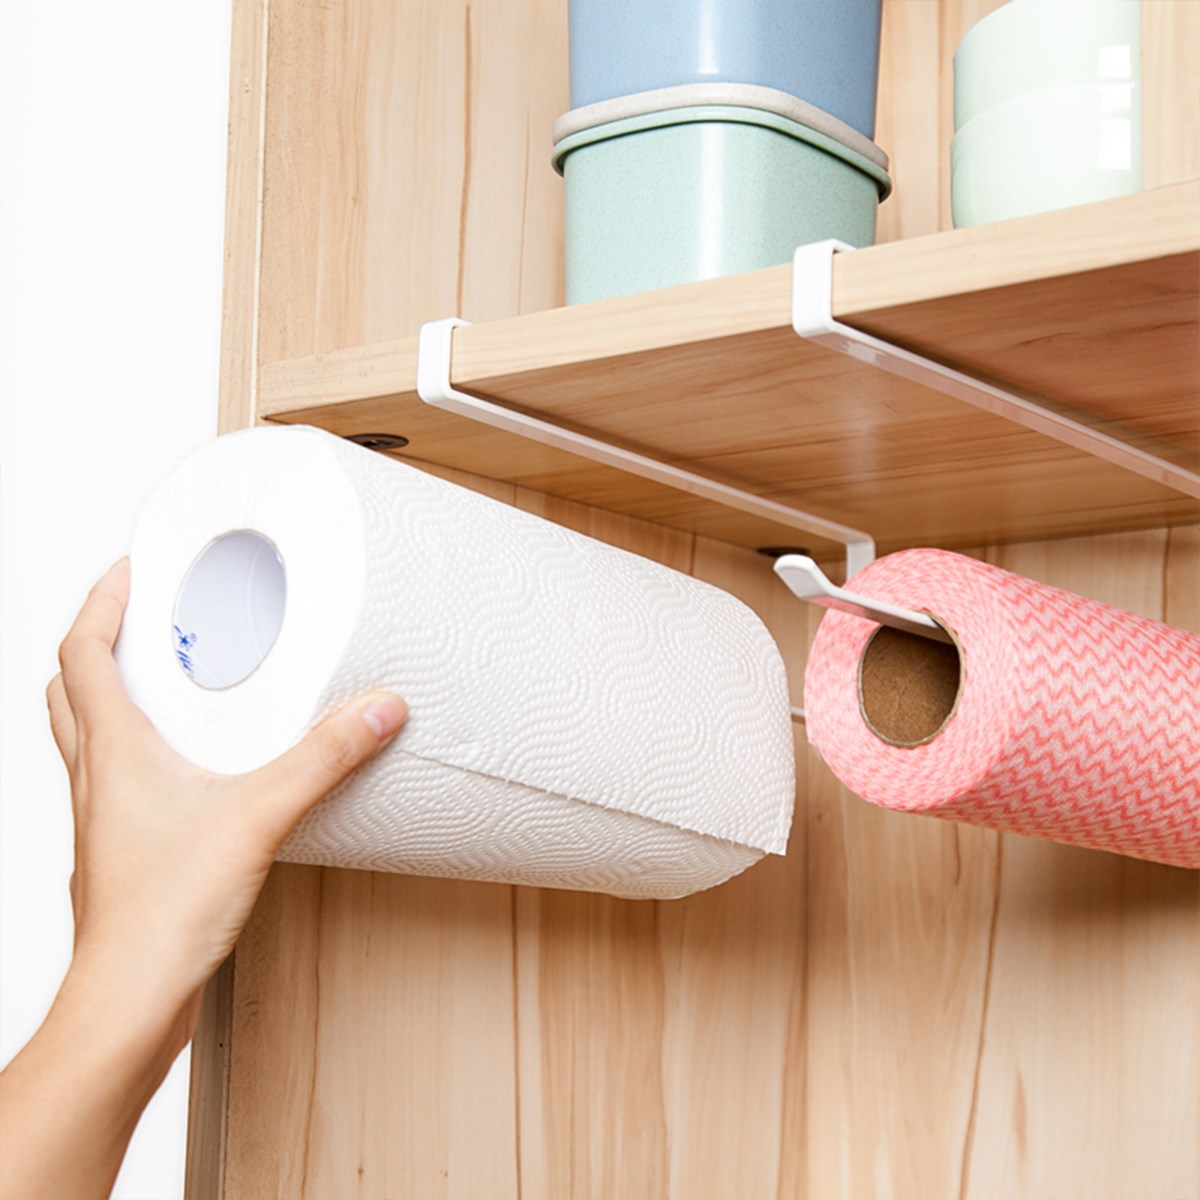 Kitchen hand towel holder - Roll Paper Holder Towel Rack Wall Mounted Kitchen Cupboard Toilet Bathroom Paper Holder Towel Rack Hand